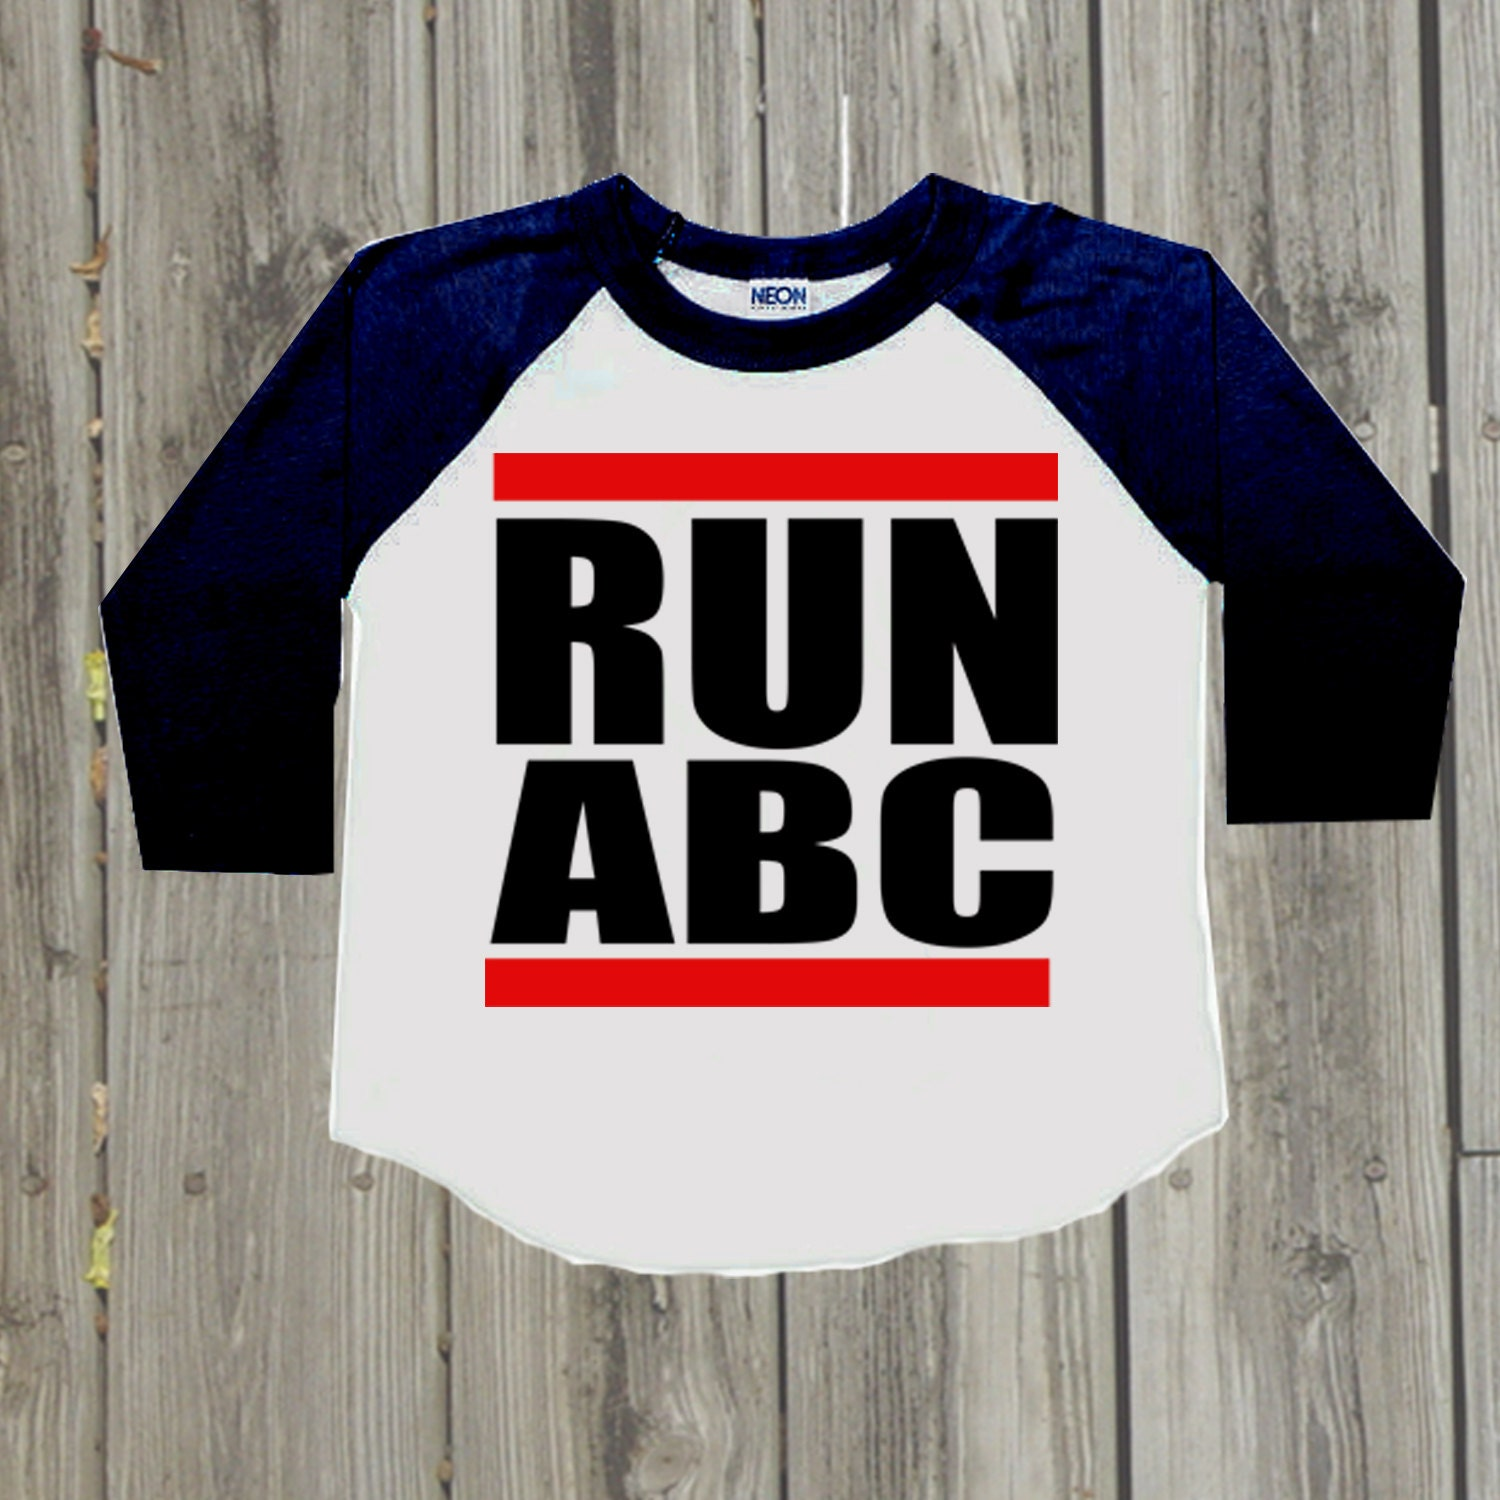 Baby boy clothes. Hipster Kids clothes. Toddler boy 1 year old - photo#5